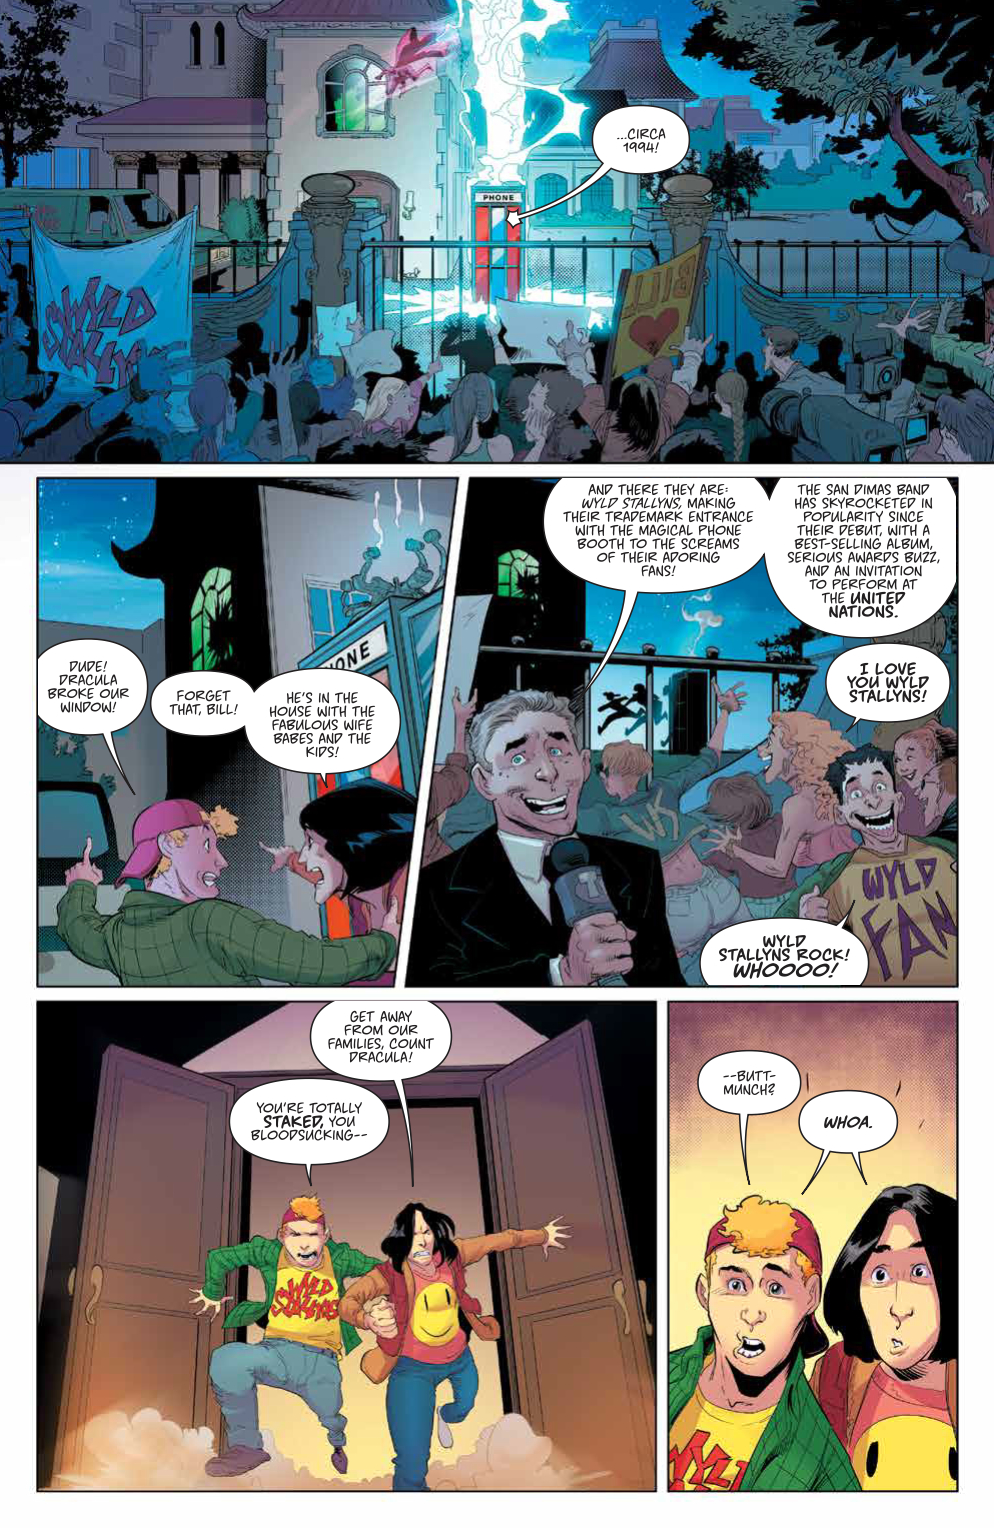 Bill_Ted_Save_the_Universe_001_PRESS_7